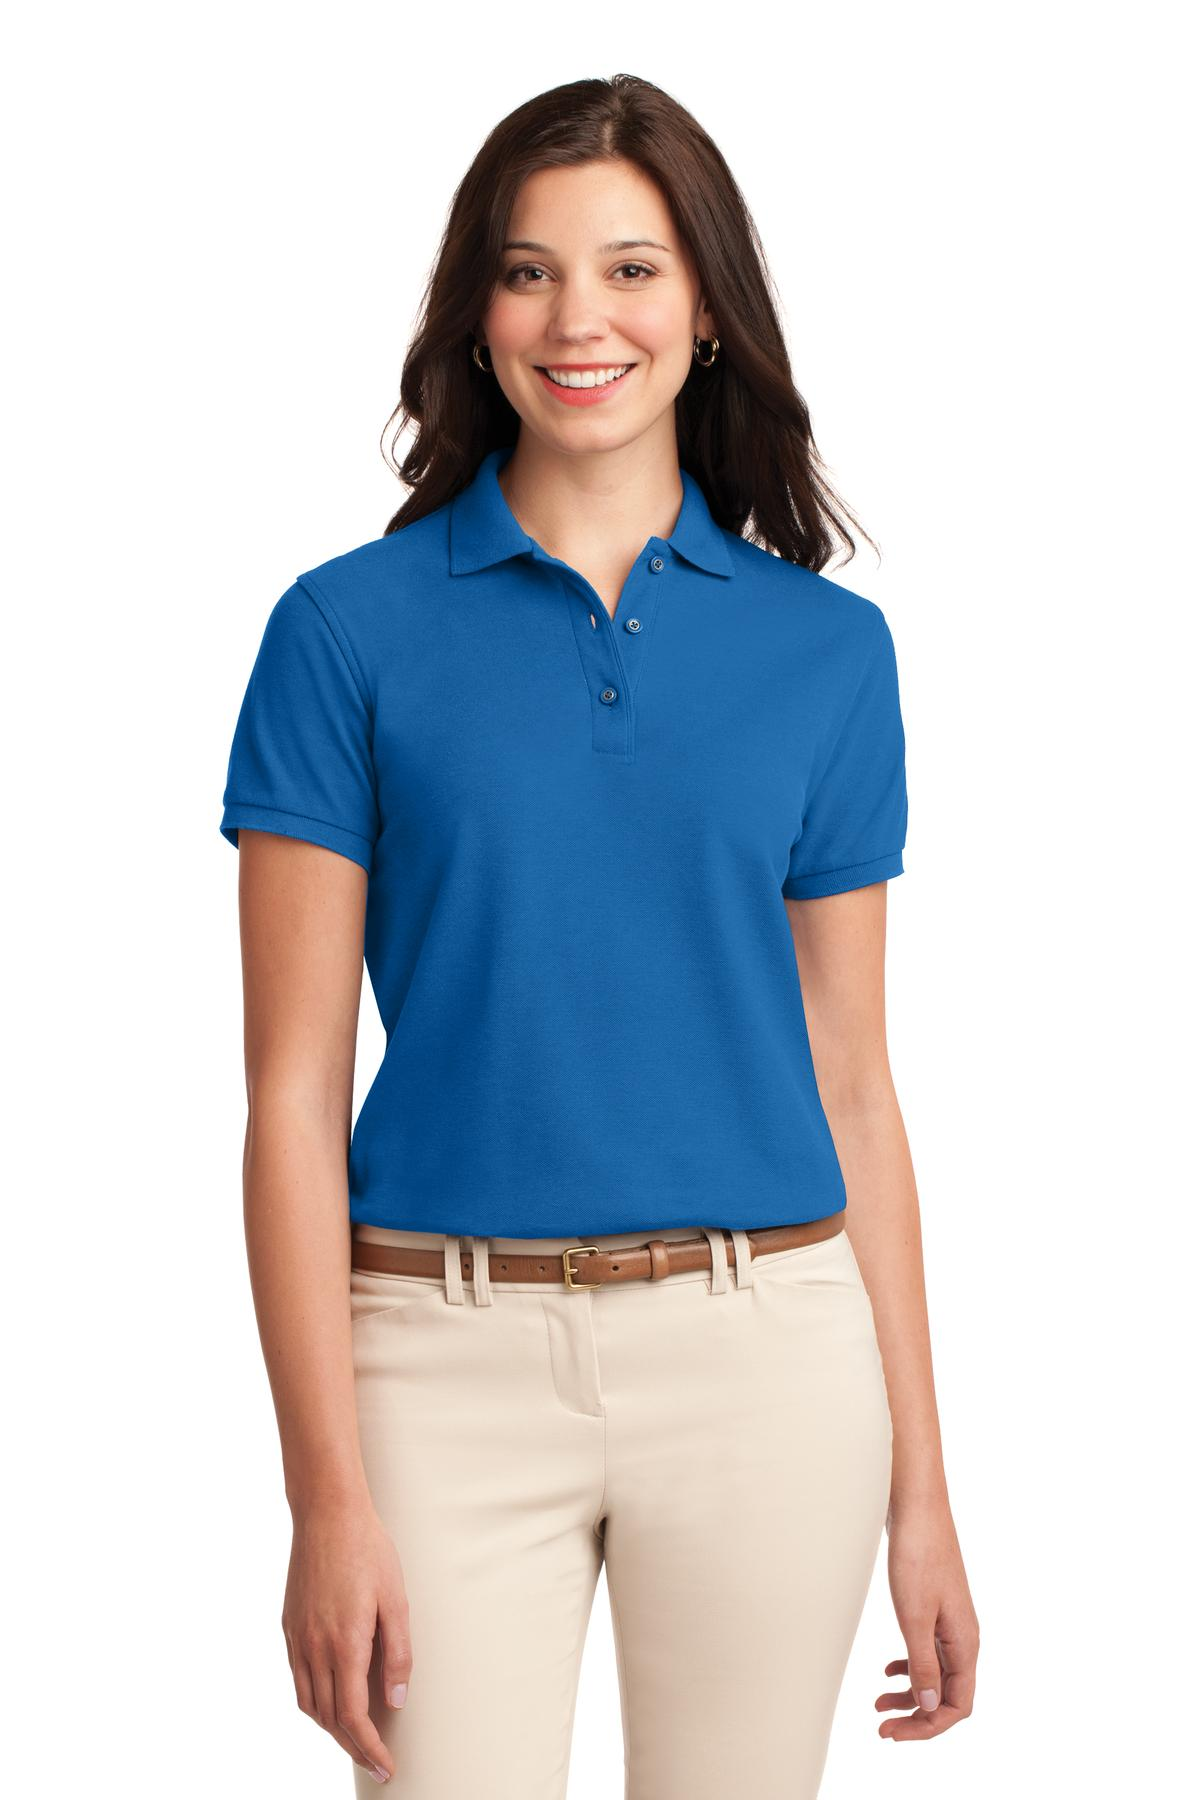 Hibiscus Port Authority Ladies Short Sleeve Easy Care Shirt.